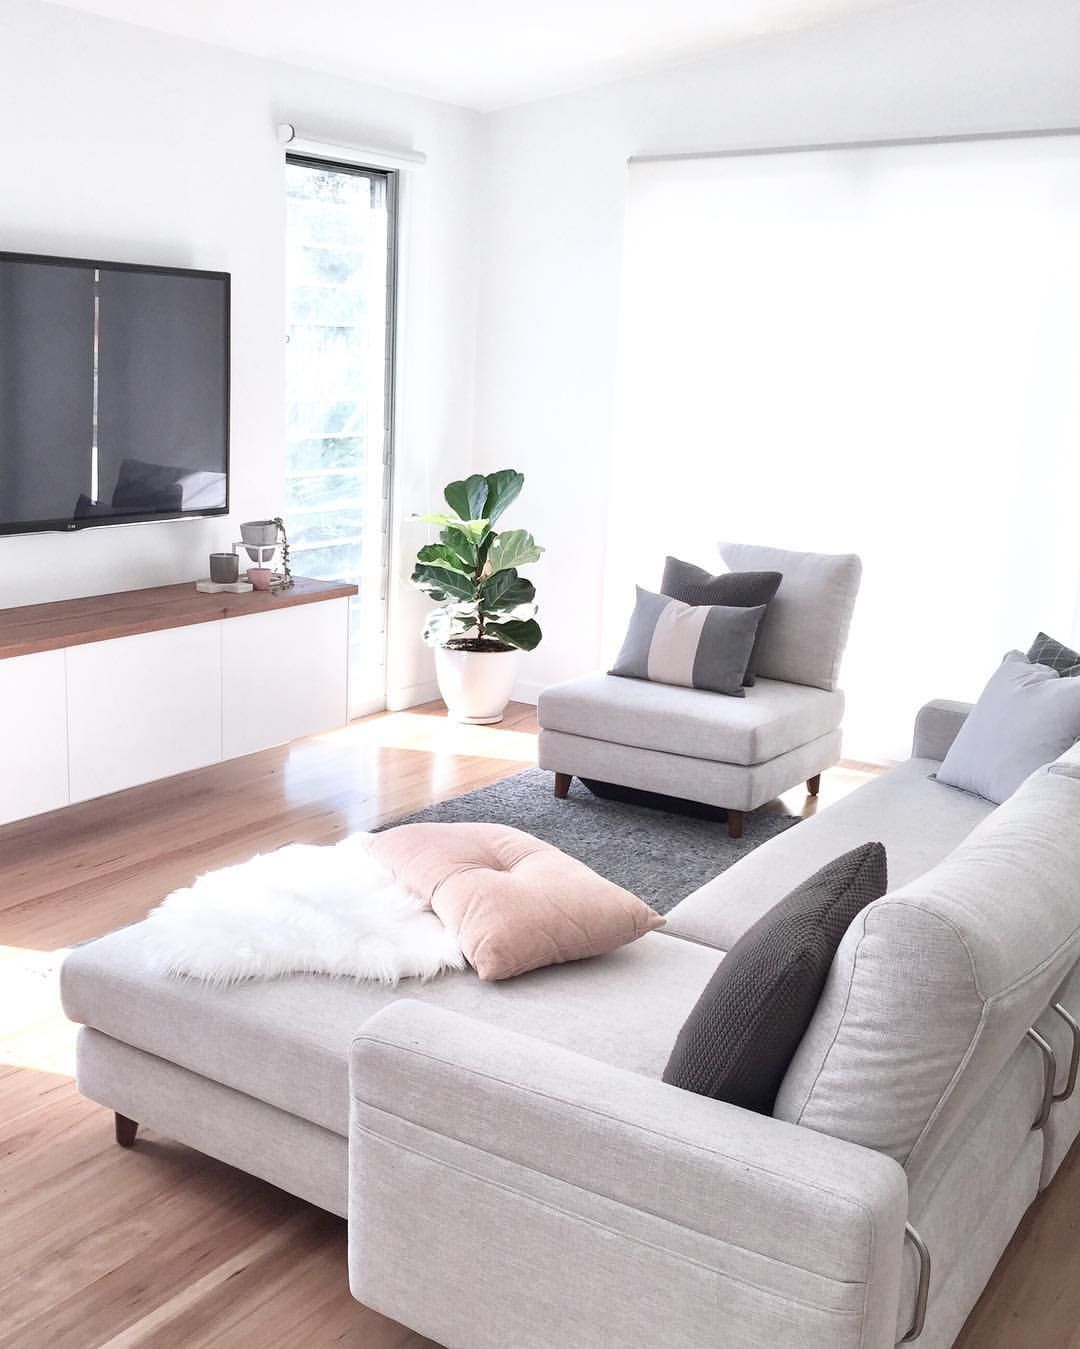 small living room with no coffee table rooms decor tap for that 40 off or more sale home items at the